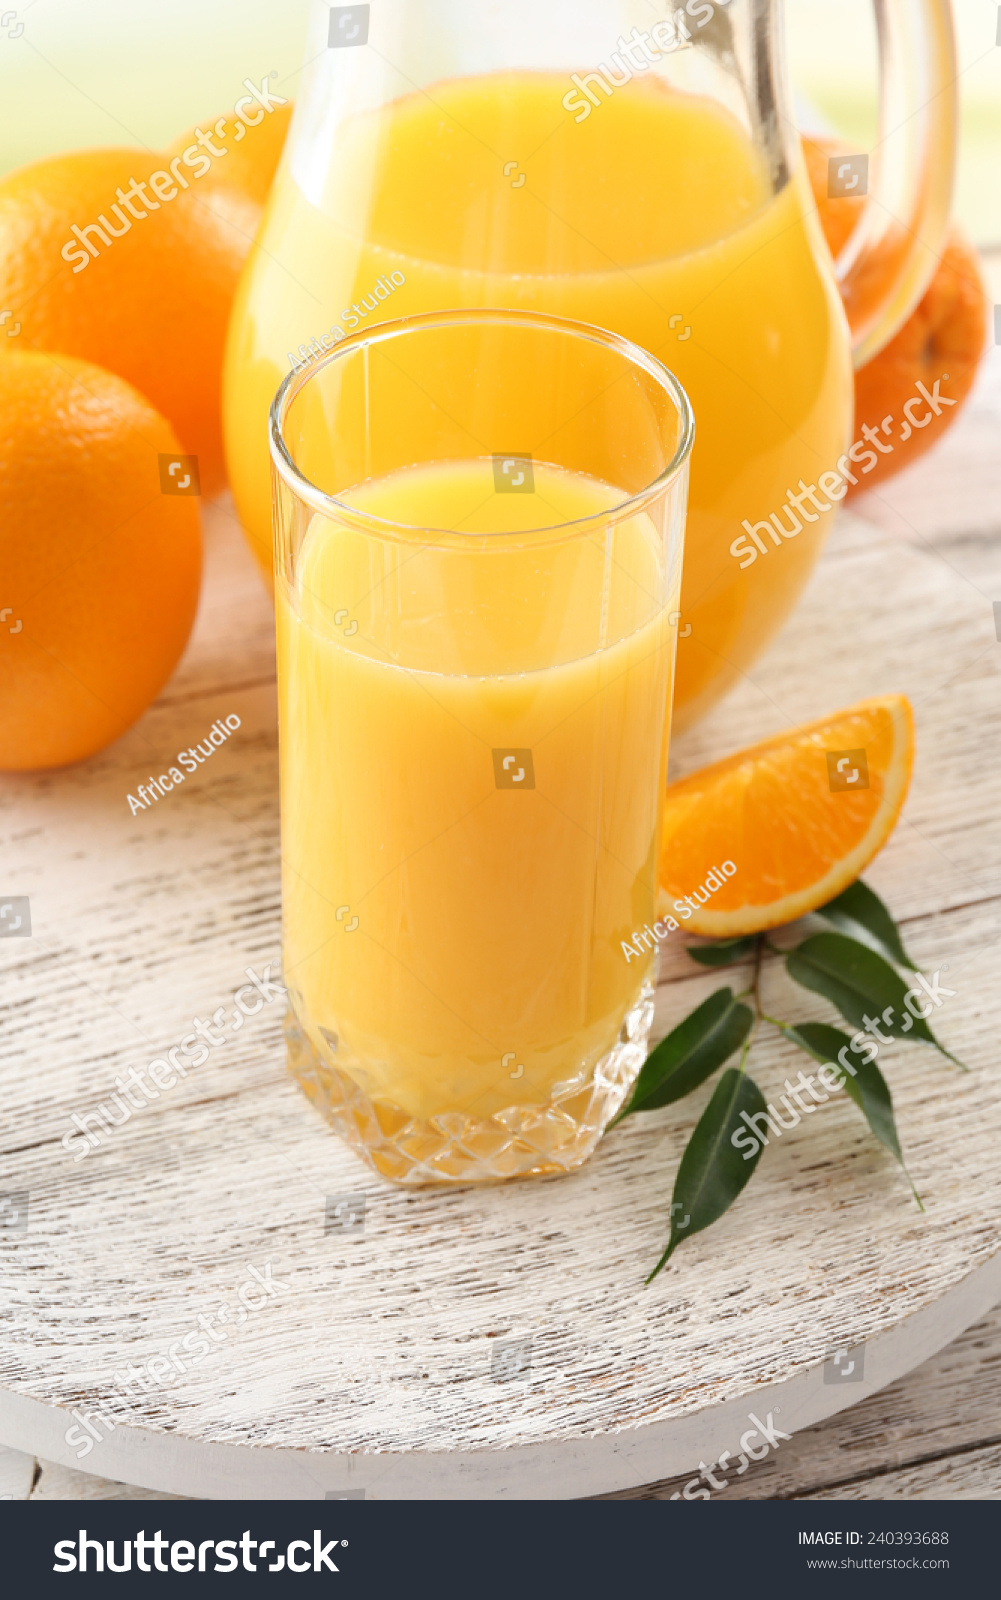 Glass Orange Juice Oranges On Color Stock Photo Edit Now 240393688,What Colour Is Orange And Blue